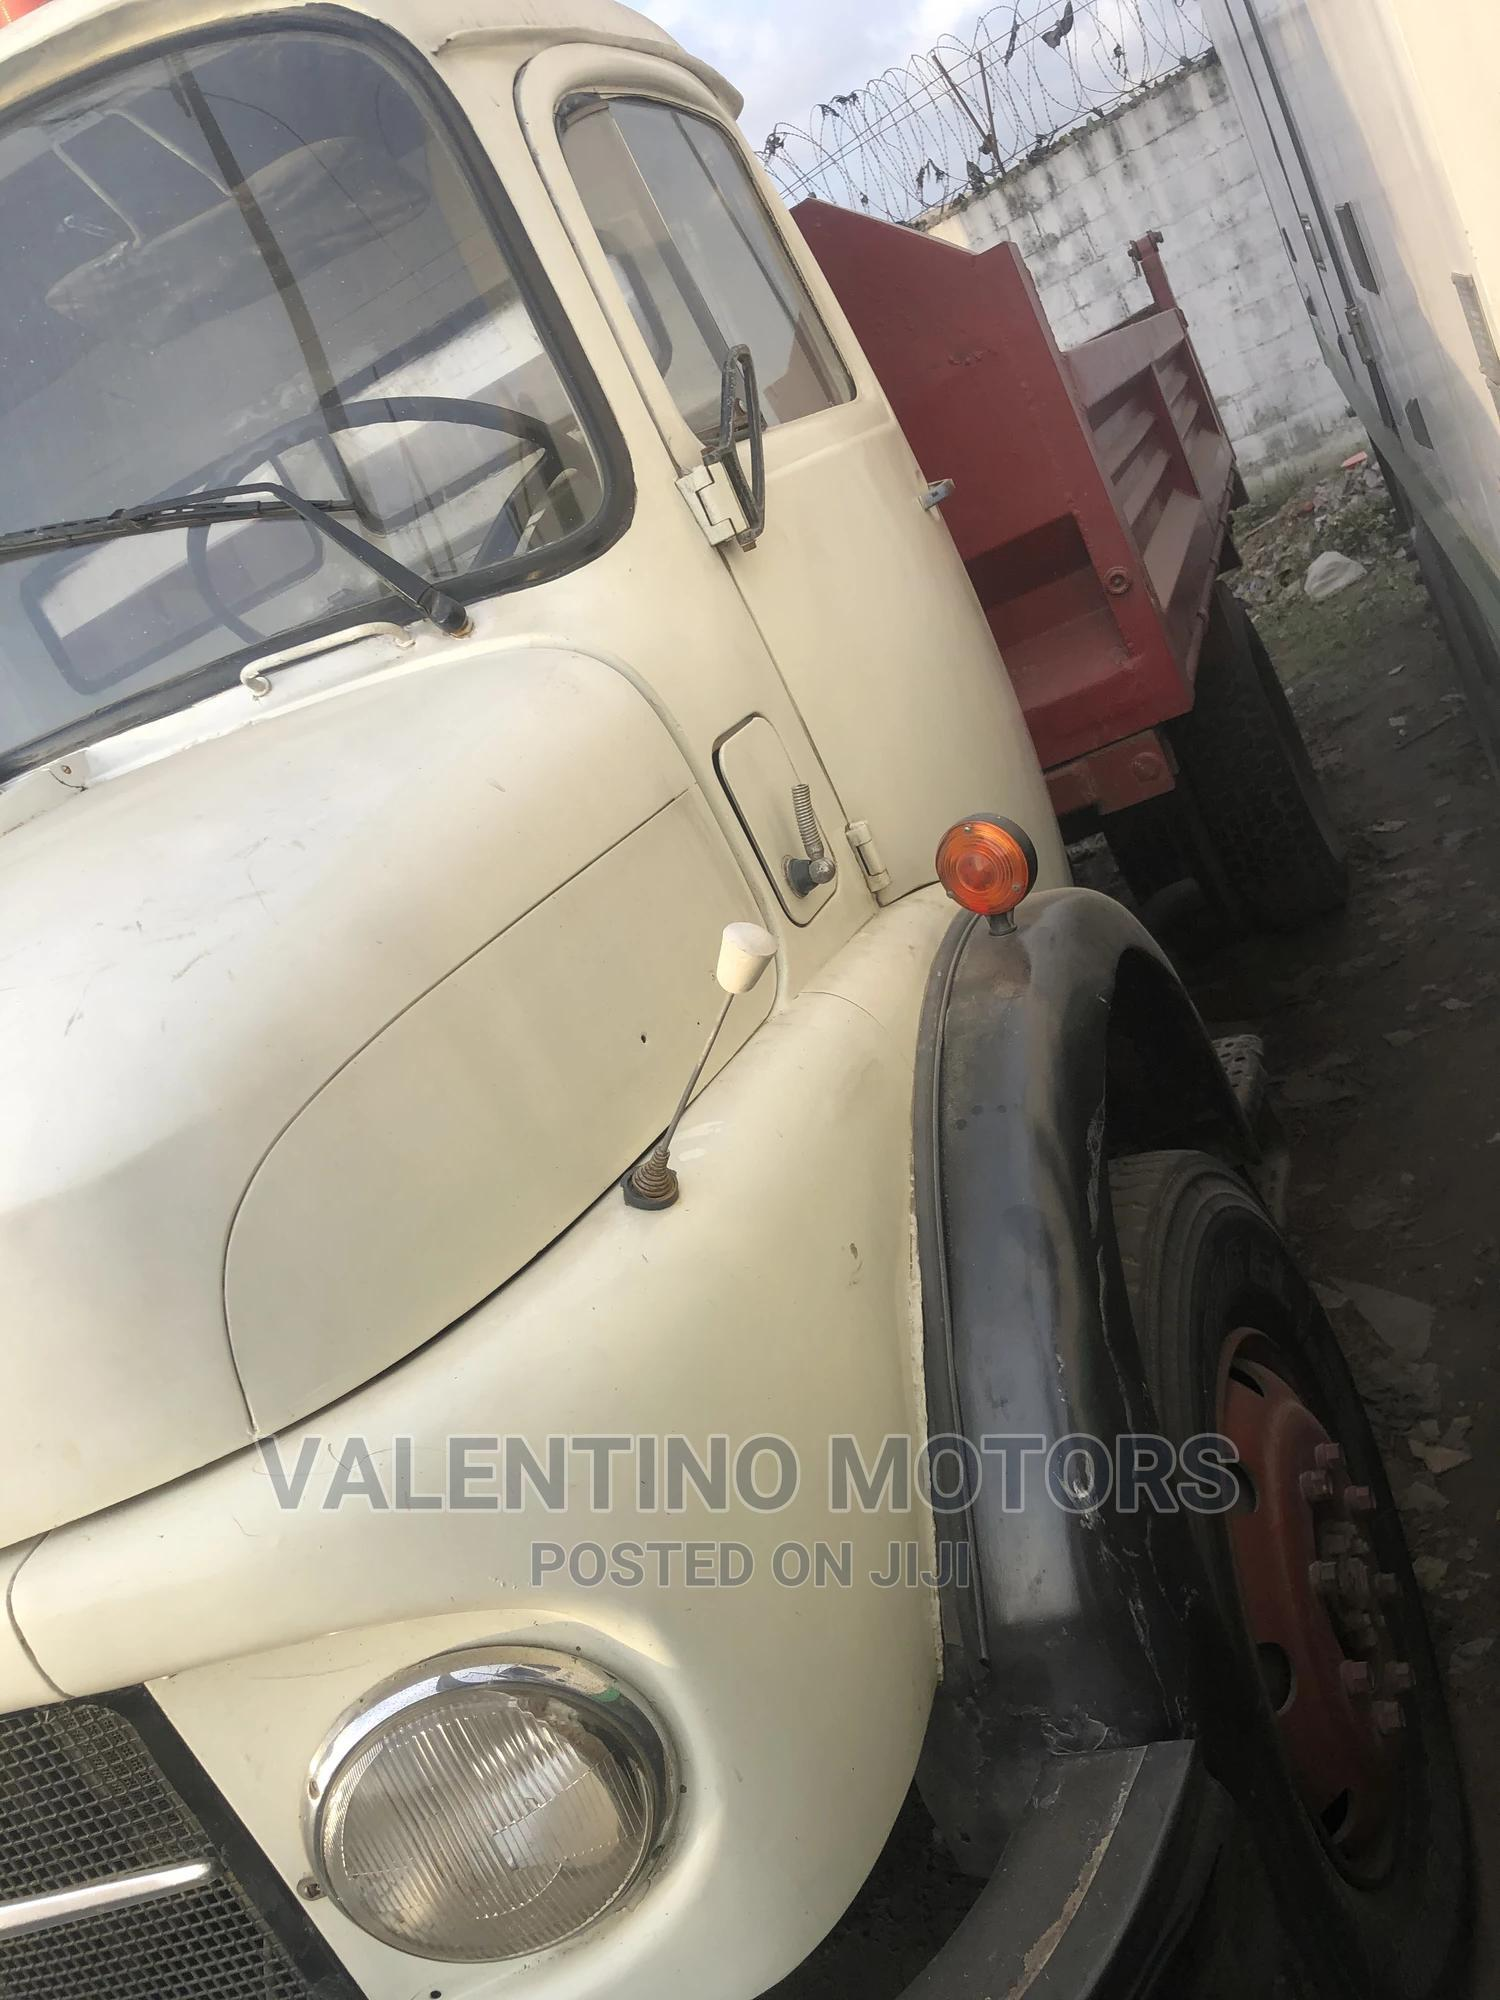 Mercedes-Benz 911 Tipper 6tyres Spring Spring | Trucks & Trailers for sale in Apapa, Lagos State, Nigeria